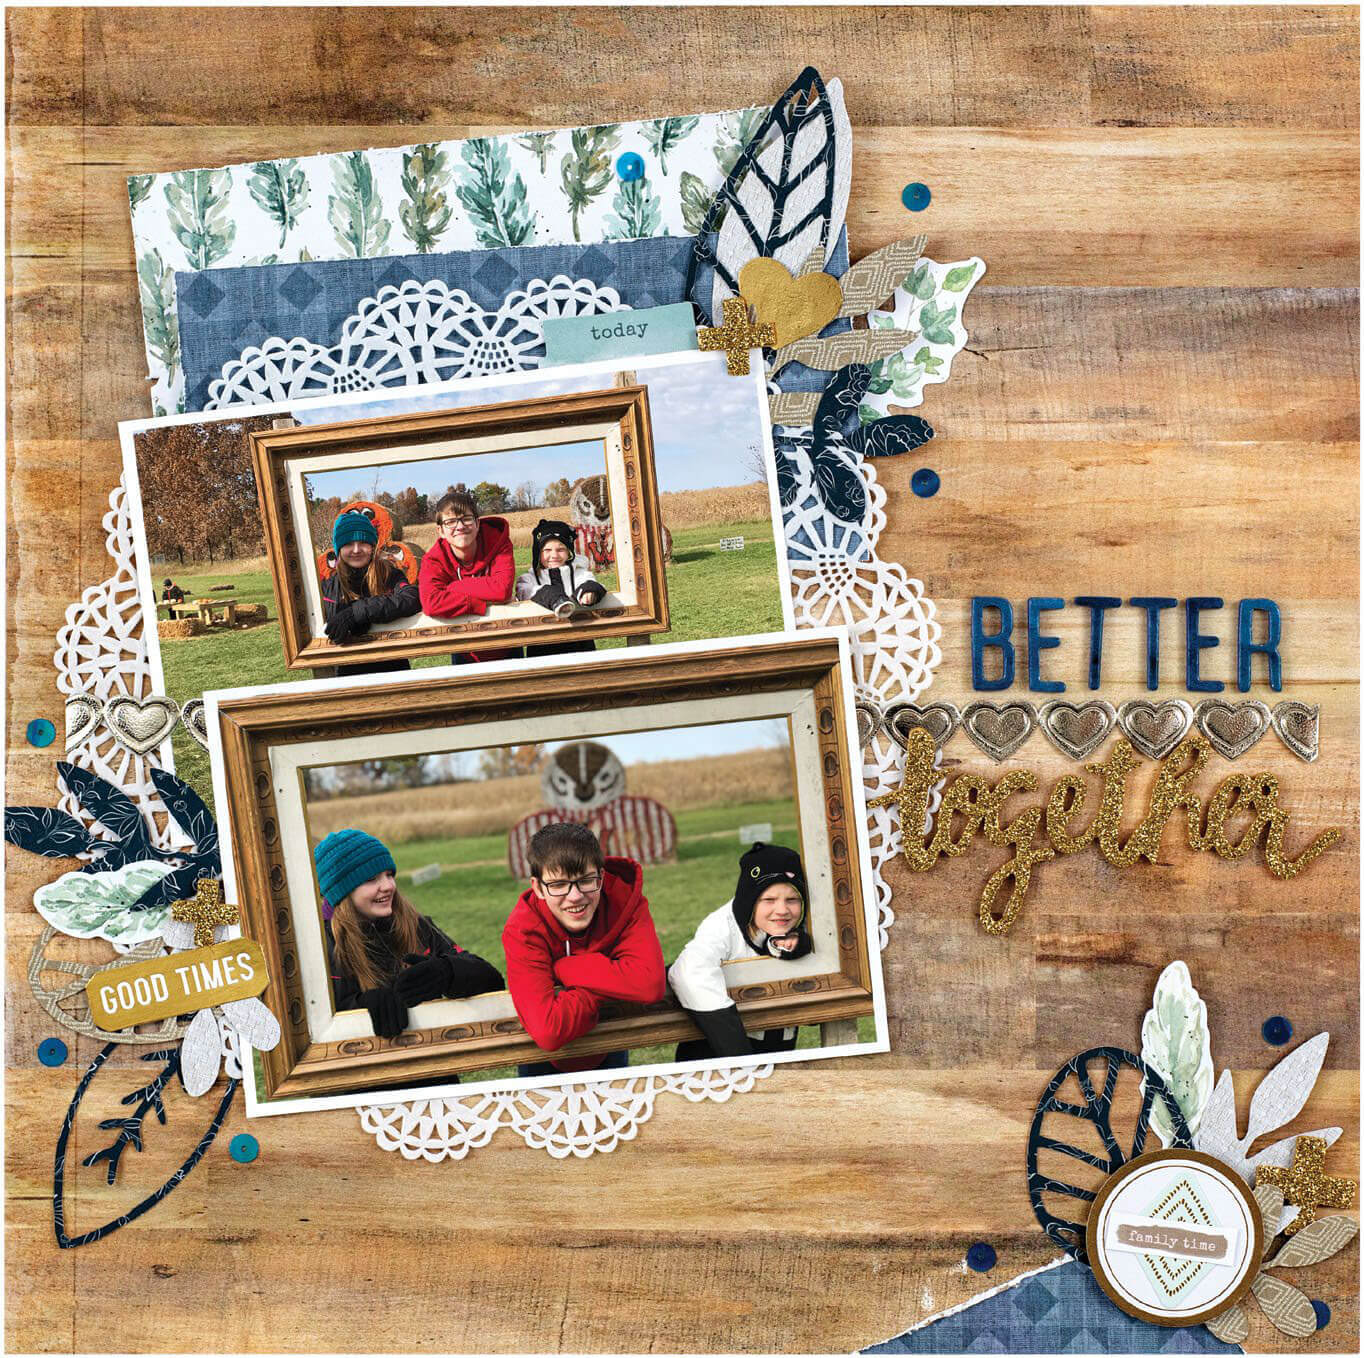 SCT Fall 2019 - Better Together by Daisie Hanson